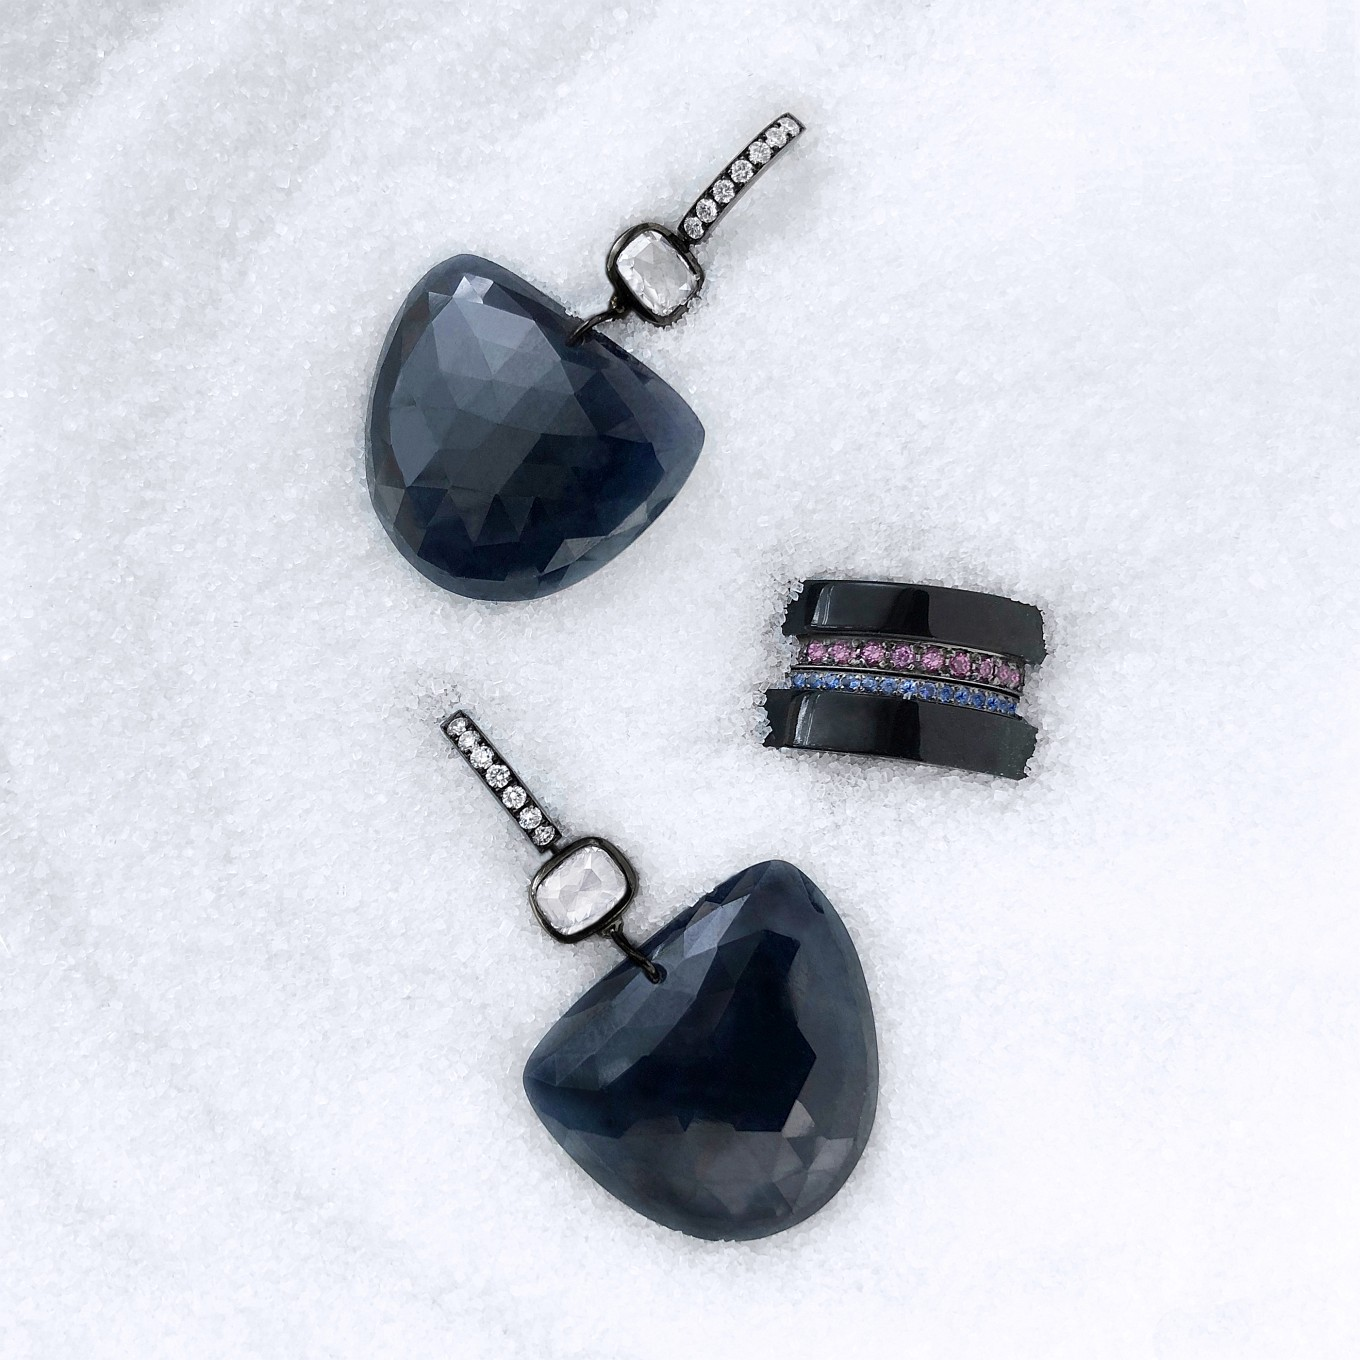 ROSE CUT BLUE SAPPHIRE & DIAMOND EARRINGS IN WHITE GOLD WITH BLACK RHODIUM FINISHBLACK JADE & SAPPHIRE BANDS